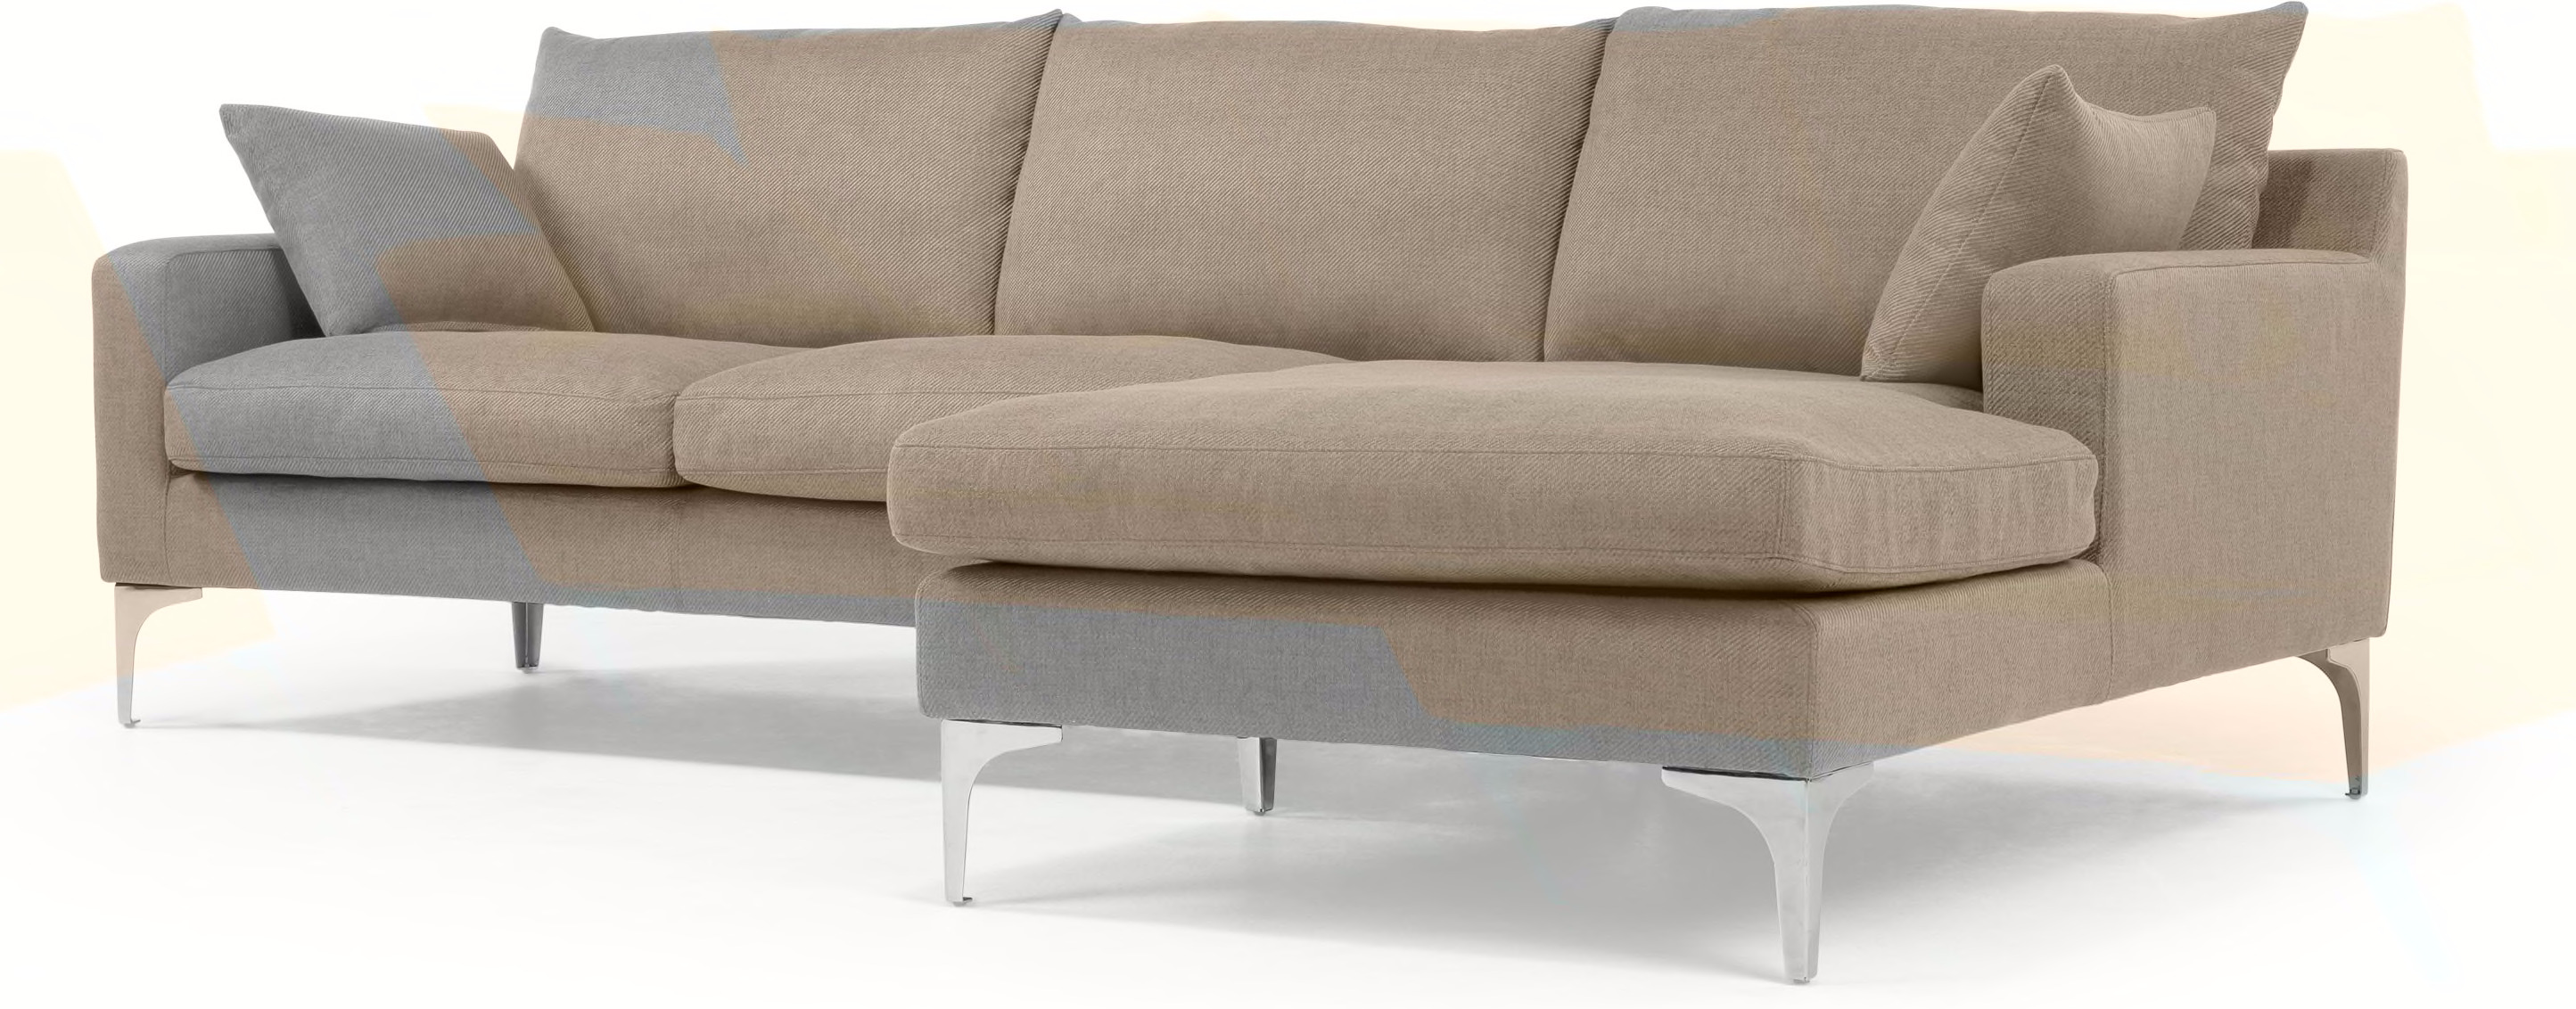 Buy cheap corner group sofa compare sofas prices for for Cheap sofa packages